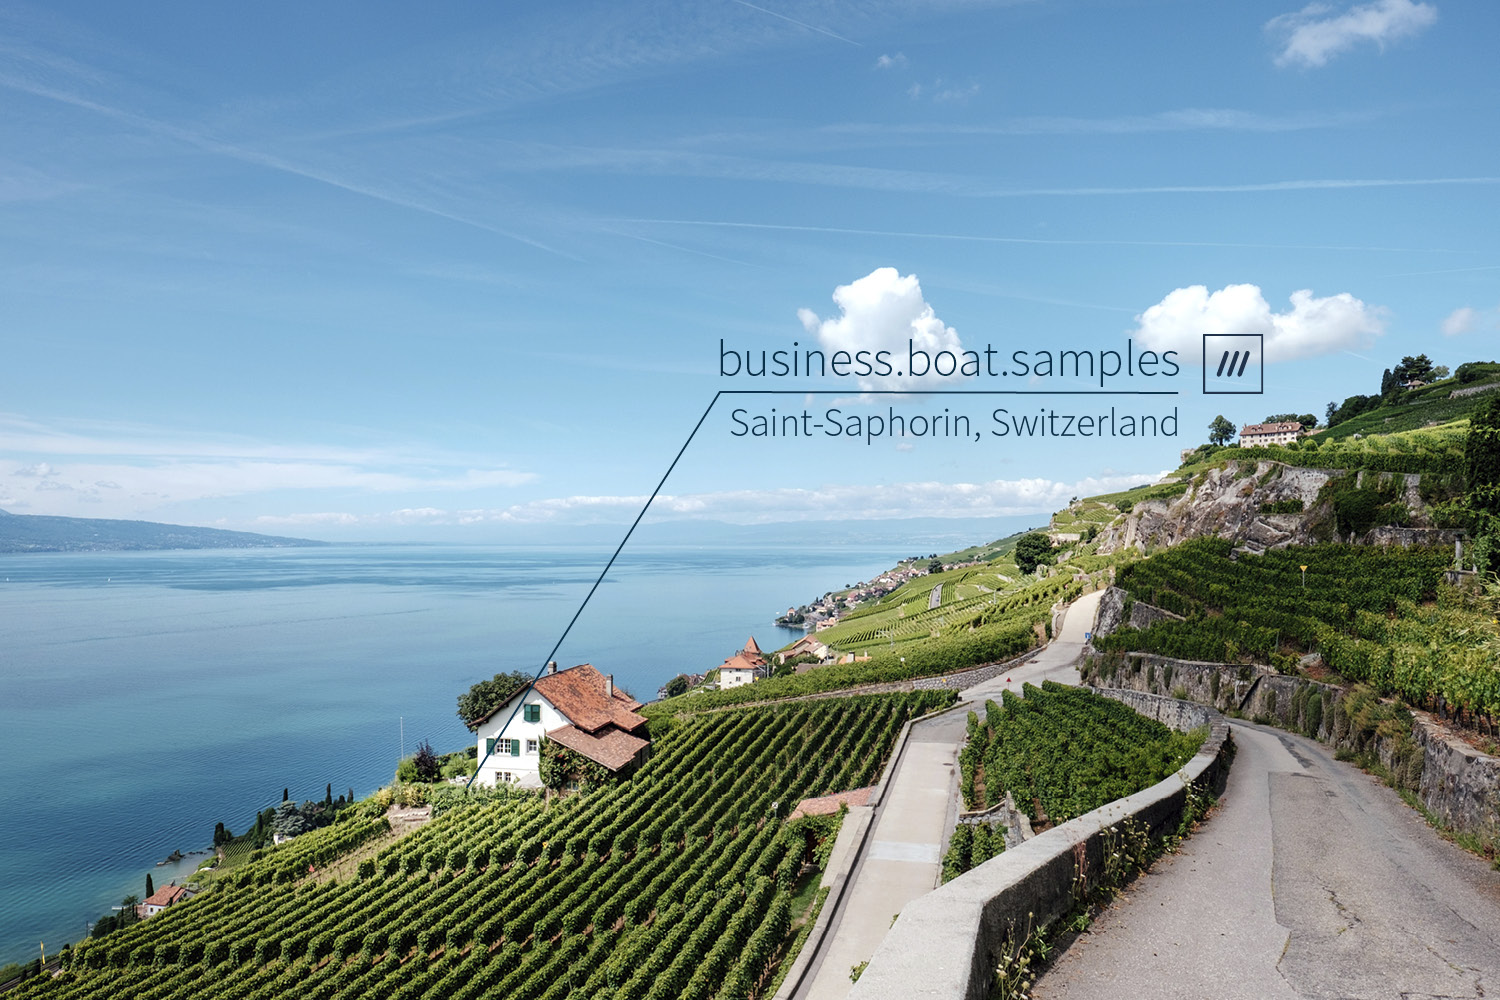 vineyards covering the landscape with sea in background at 3 word location business.boat.samples